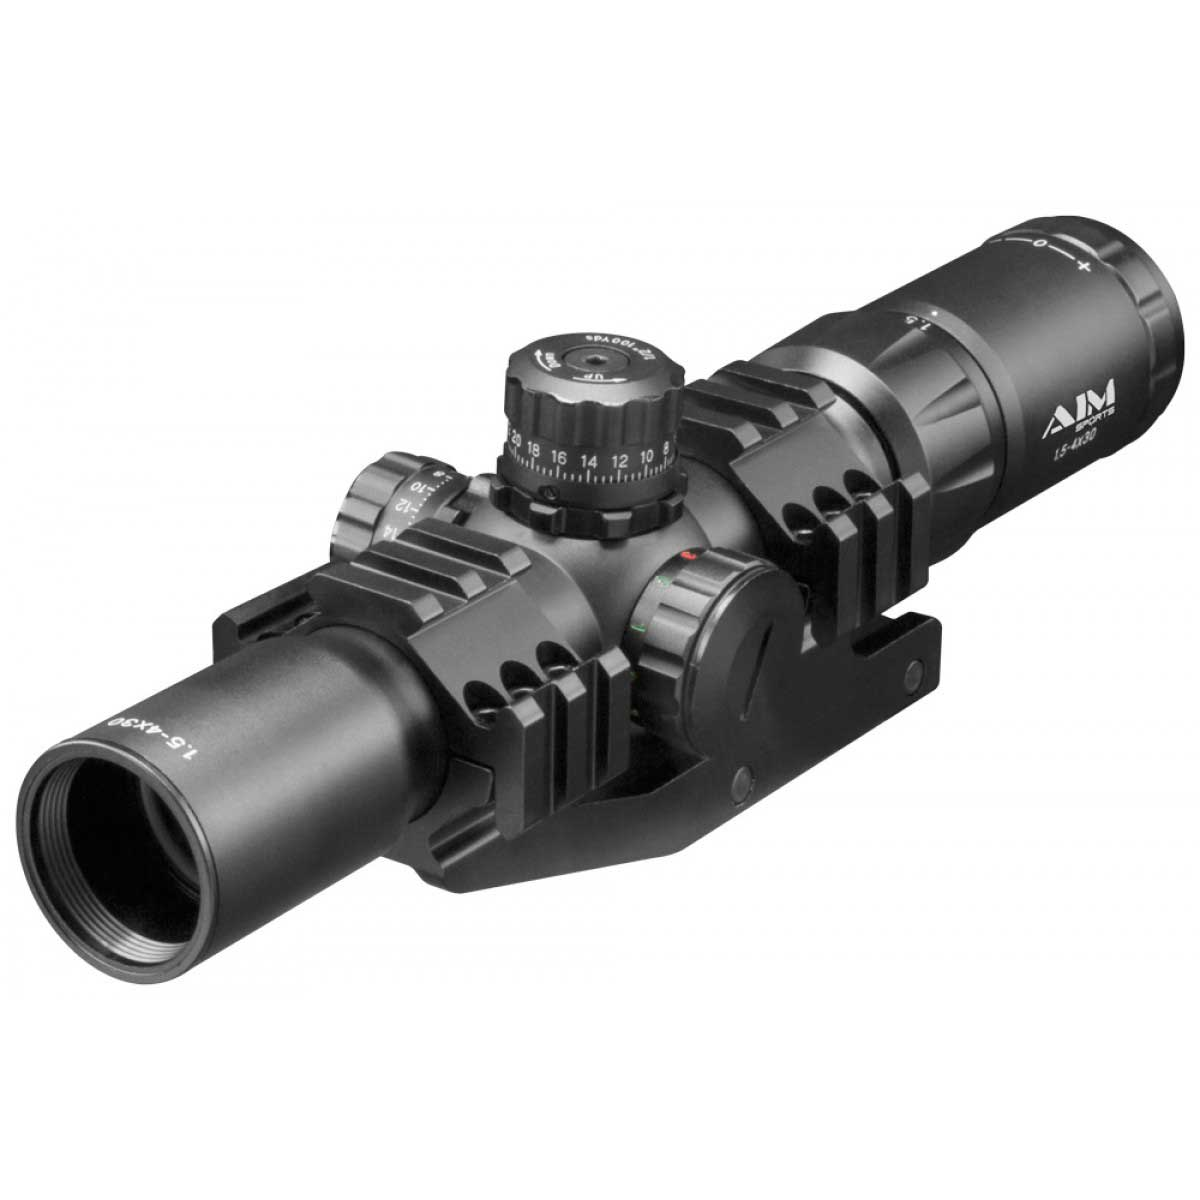 Aim Sports Recon Series 1.5-4X30MM Riflescope with Arrow Reticle